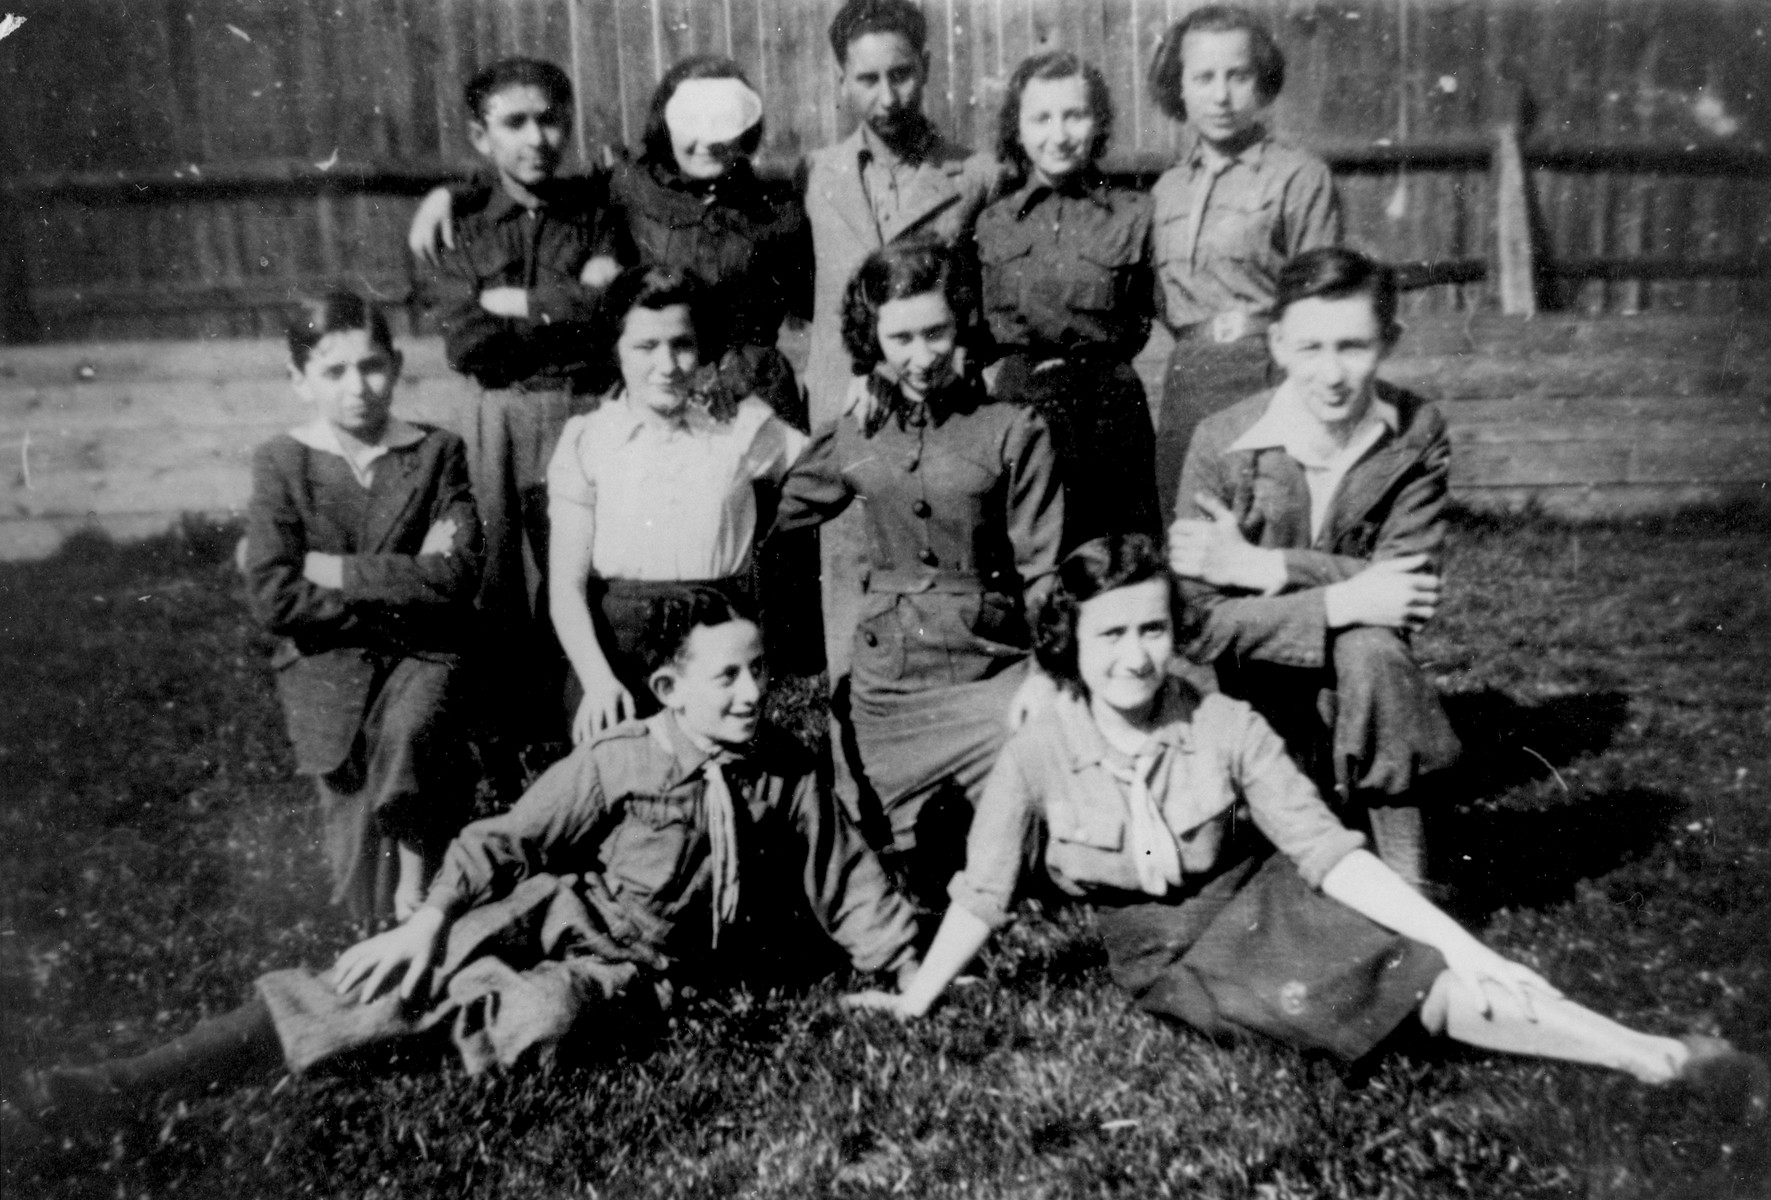 Group portrait of members of the Hanoar Hatzioni Zionist youth movement in Bedzin.  Among those pictured are: Abramek Szyjewicz (front row, left), Tova Faska (front row, right), and Rozia Londner (second row, second from the right).